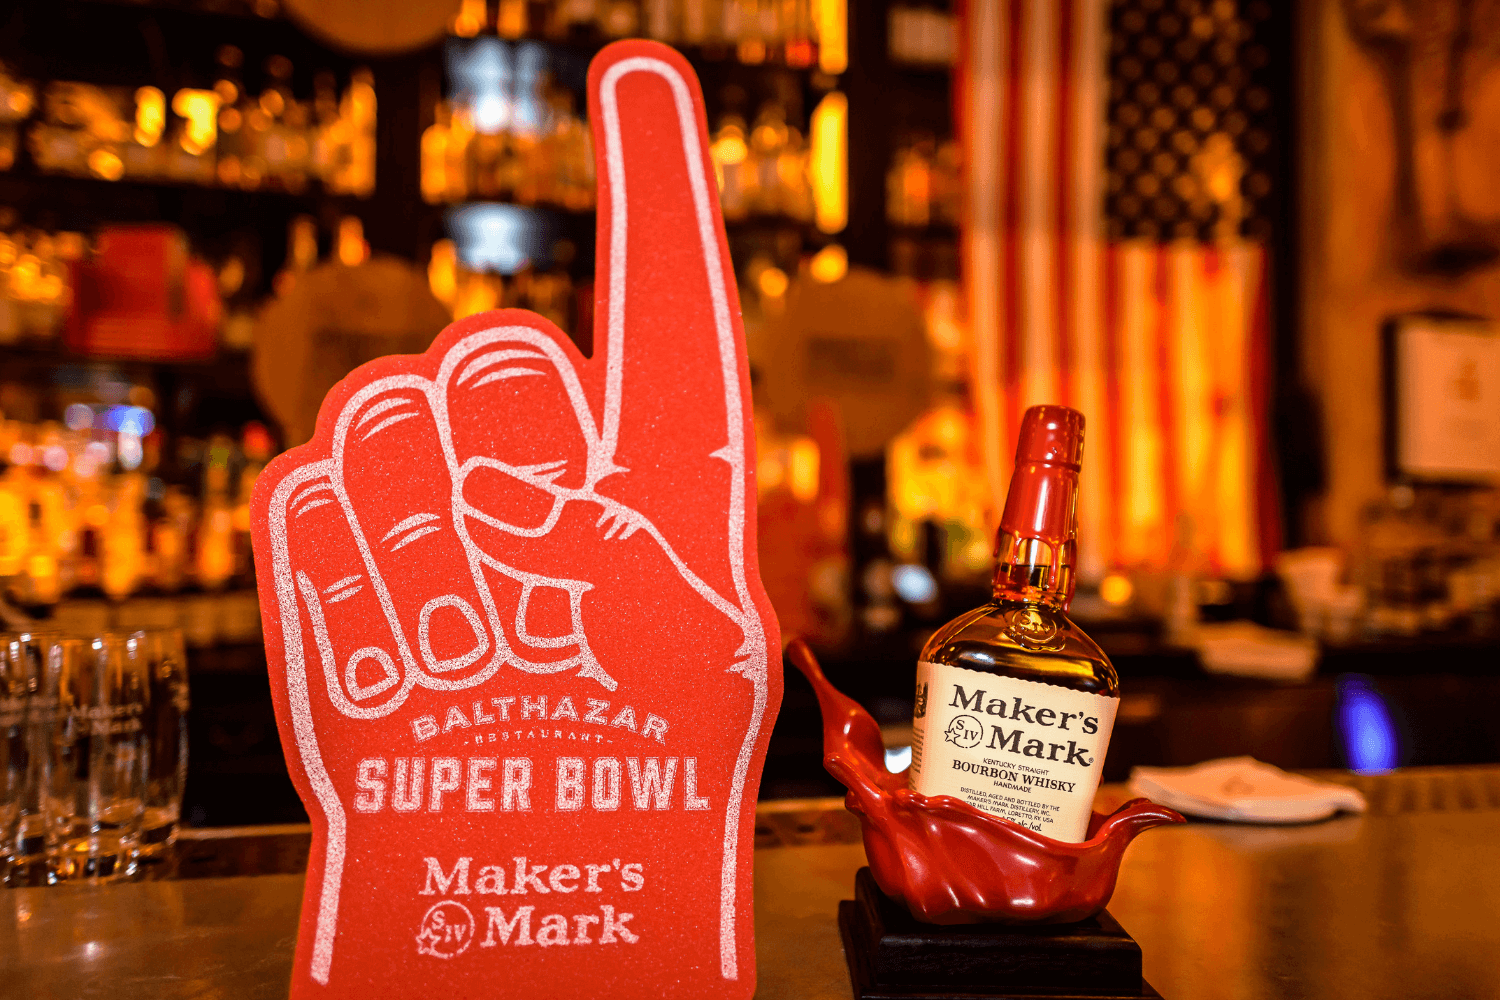 Super bowl 2019 event at Balthazar, London